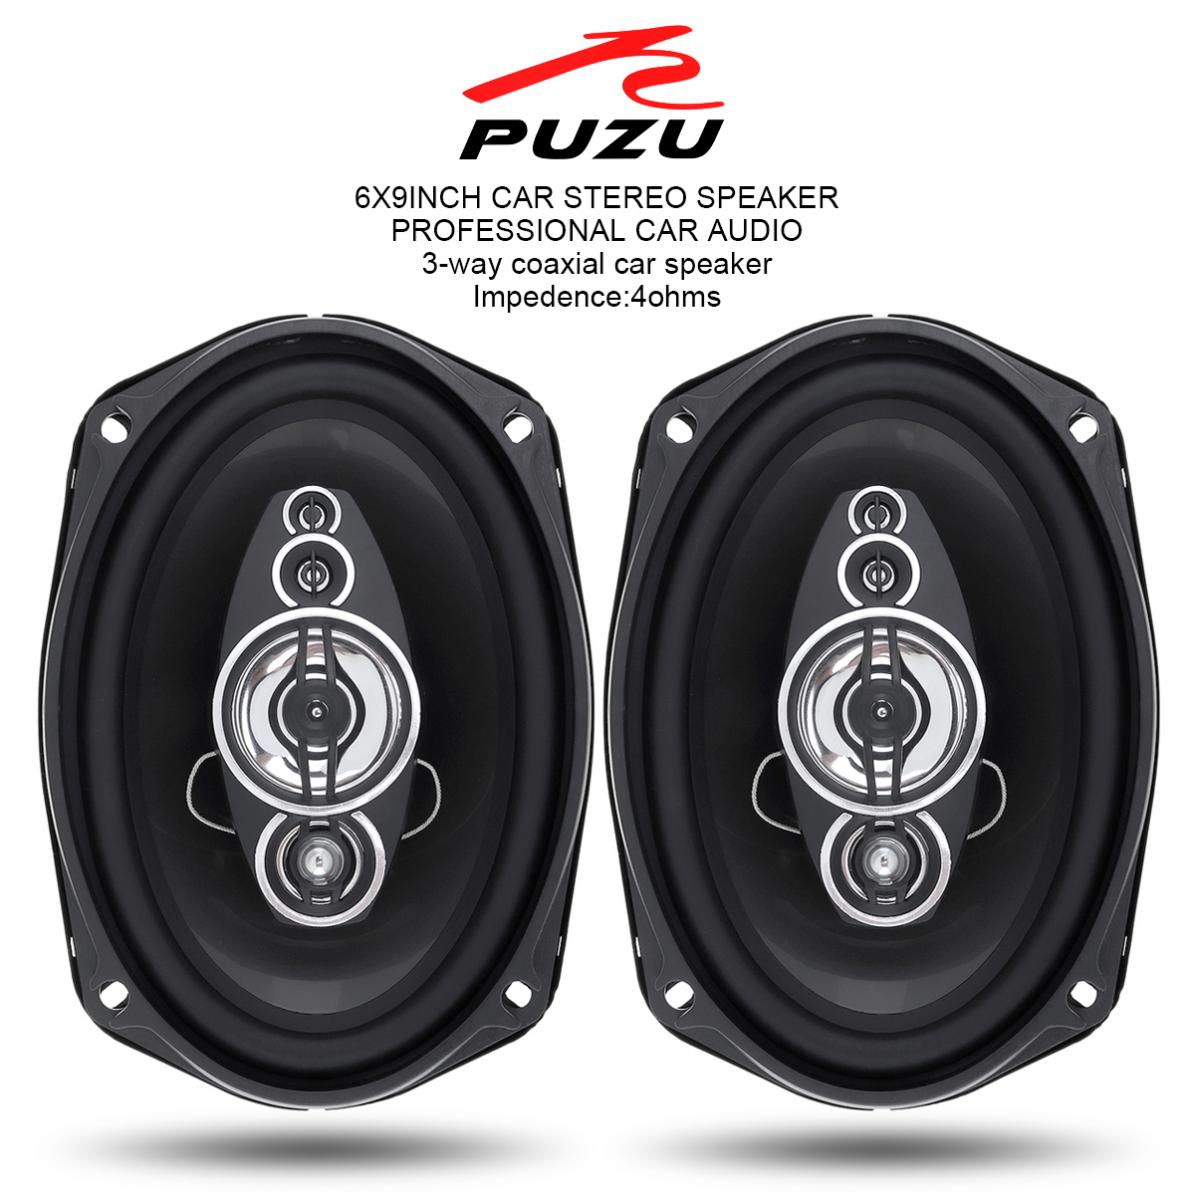 PZ-6922C 2pcs 6x9 Inch Car speakers 360W 3 Way Car Auto sound Audio speaker Music Stereo Full Range Frequency Hifi Speakers auto door component speakers a pair 2 way 2x180w 6x9 inch universal coaxial car speakers car audio stereo speaker